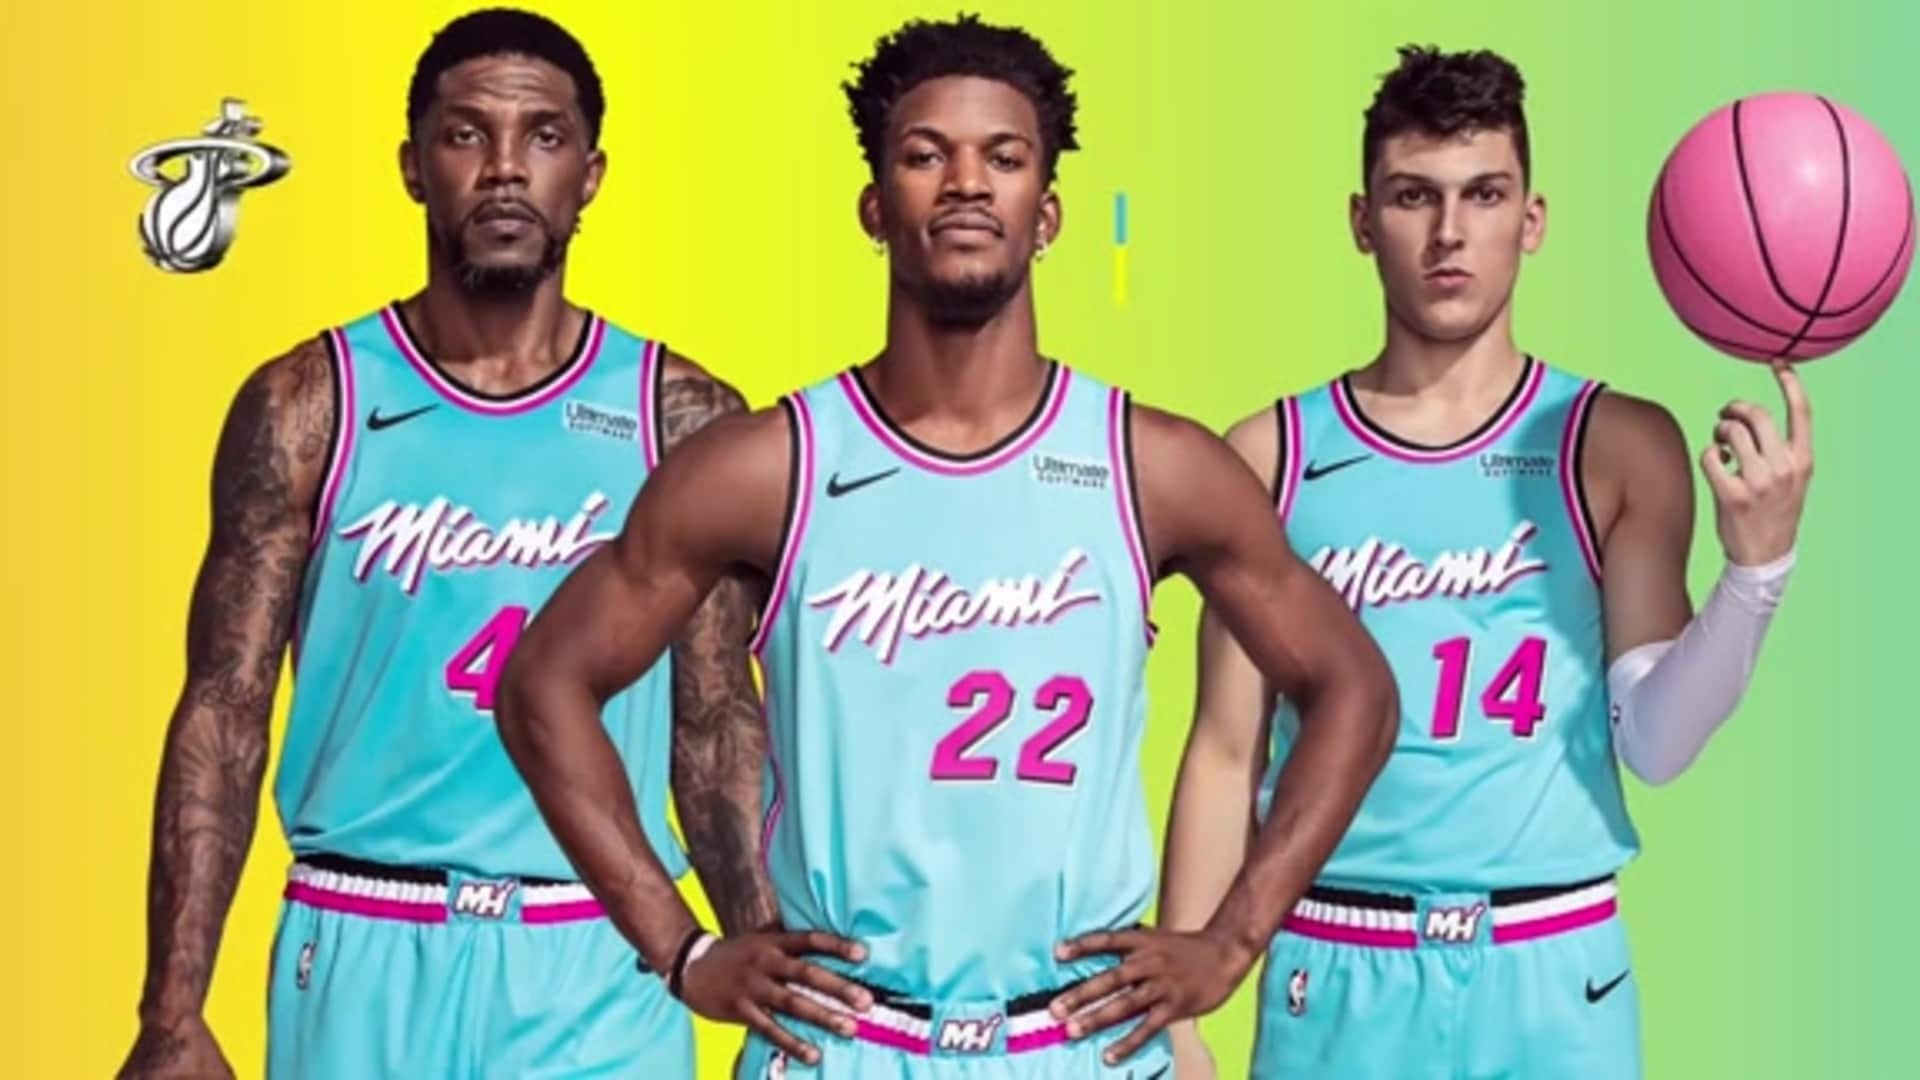 First Look At The Vicewave Collection Miami Heat